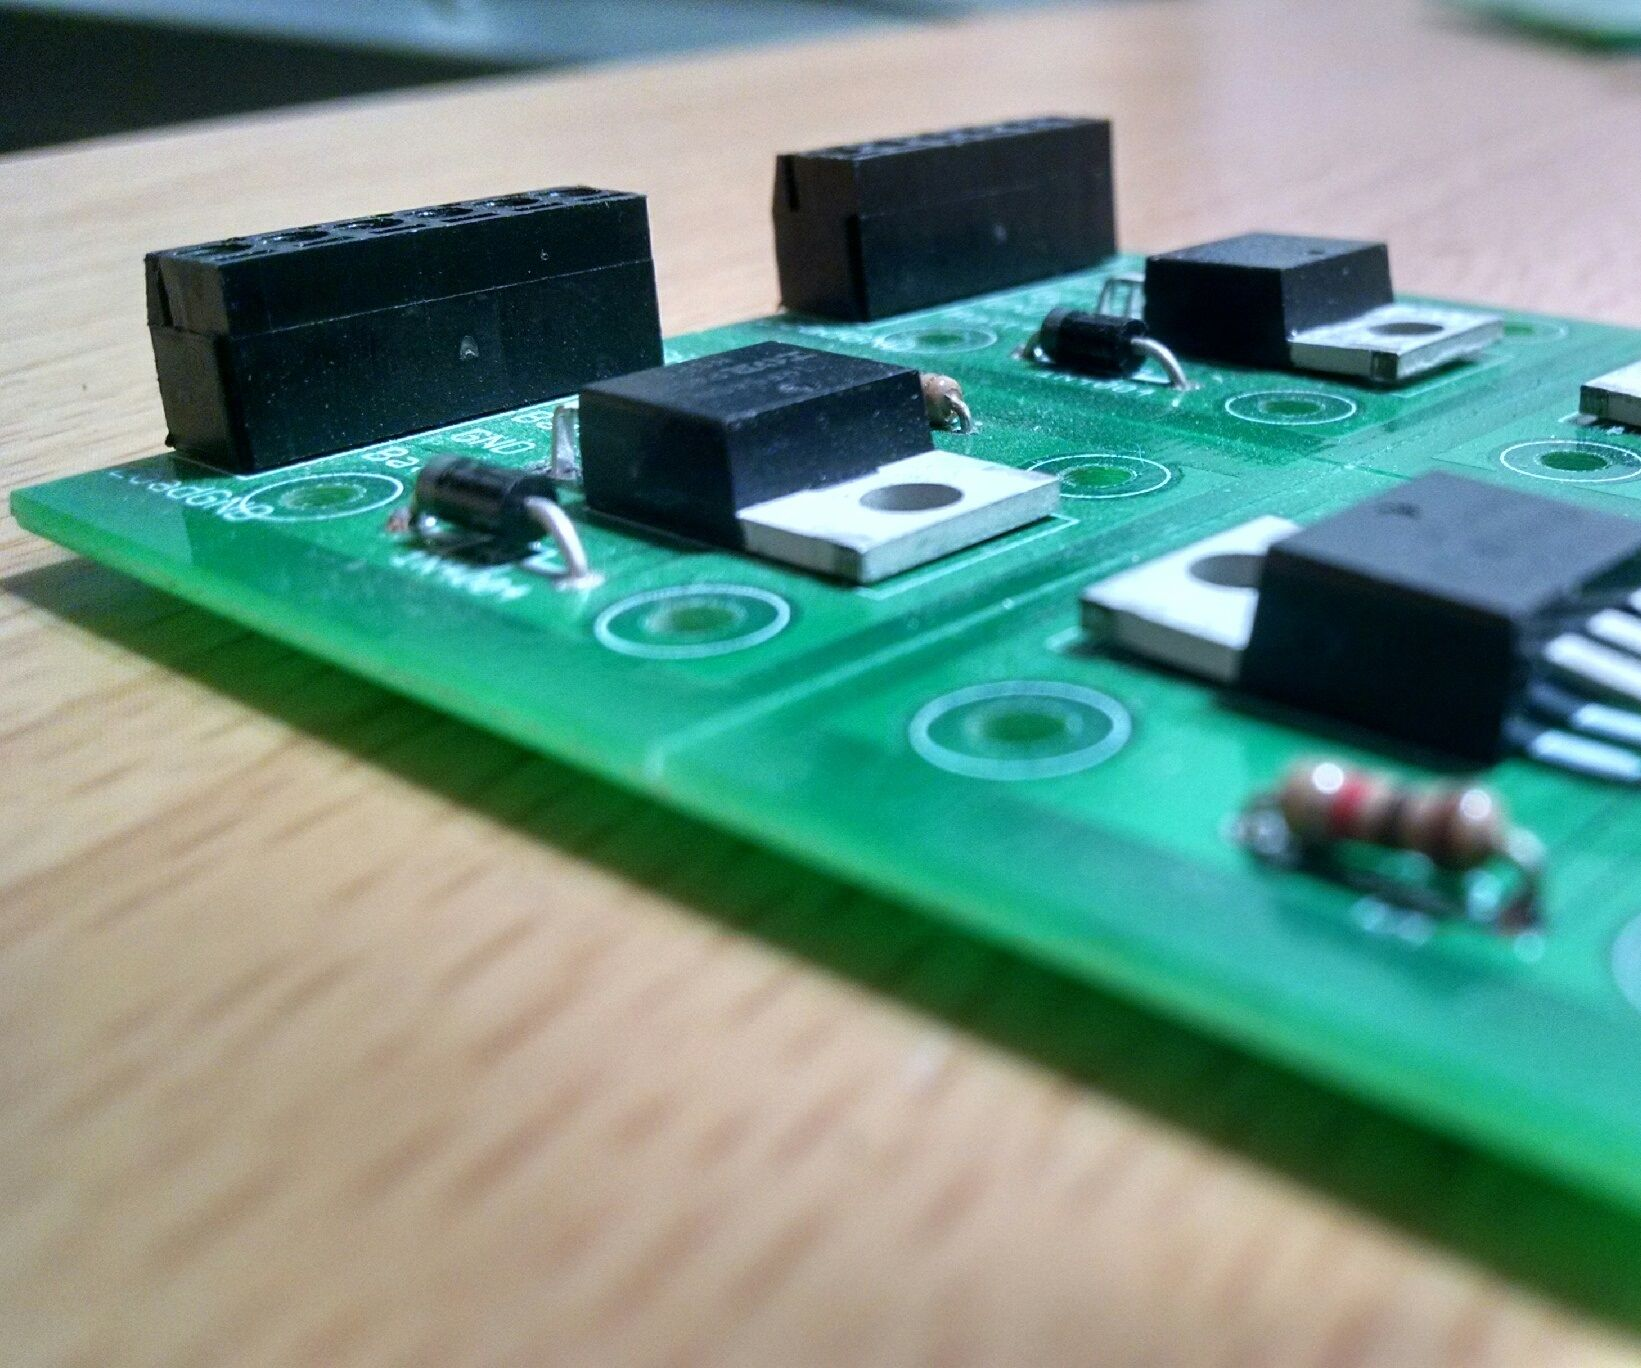 Arduino Microcontroller Mosfet 3 Steps The N Type Irf3205s Can Be Replaced With Different Types Of